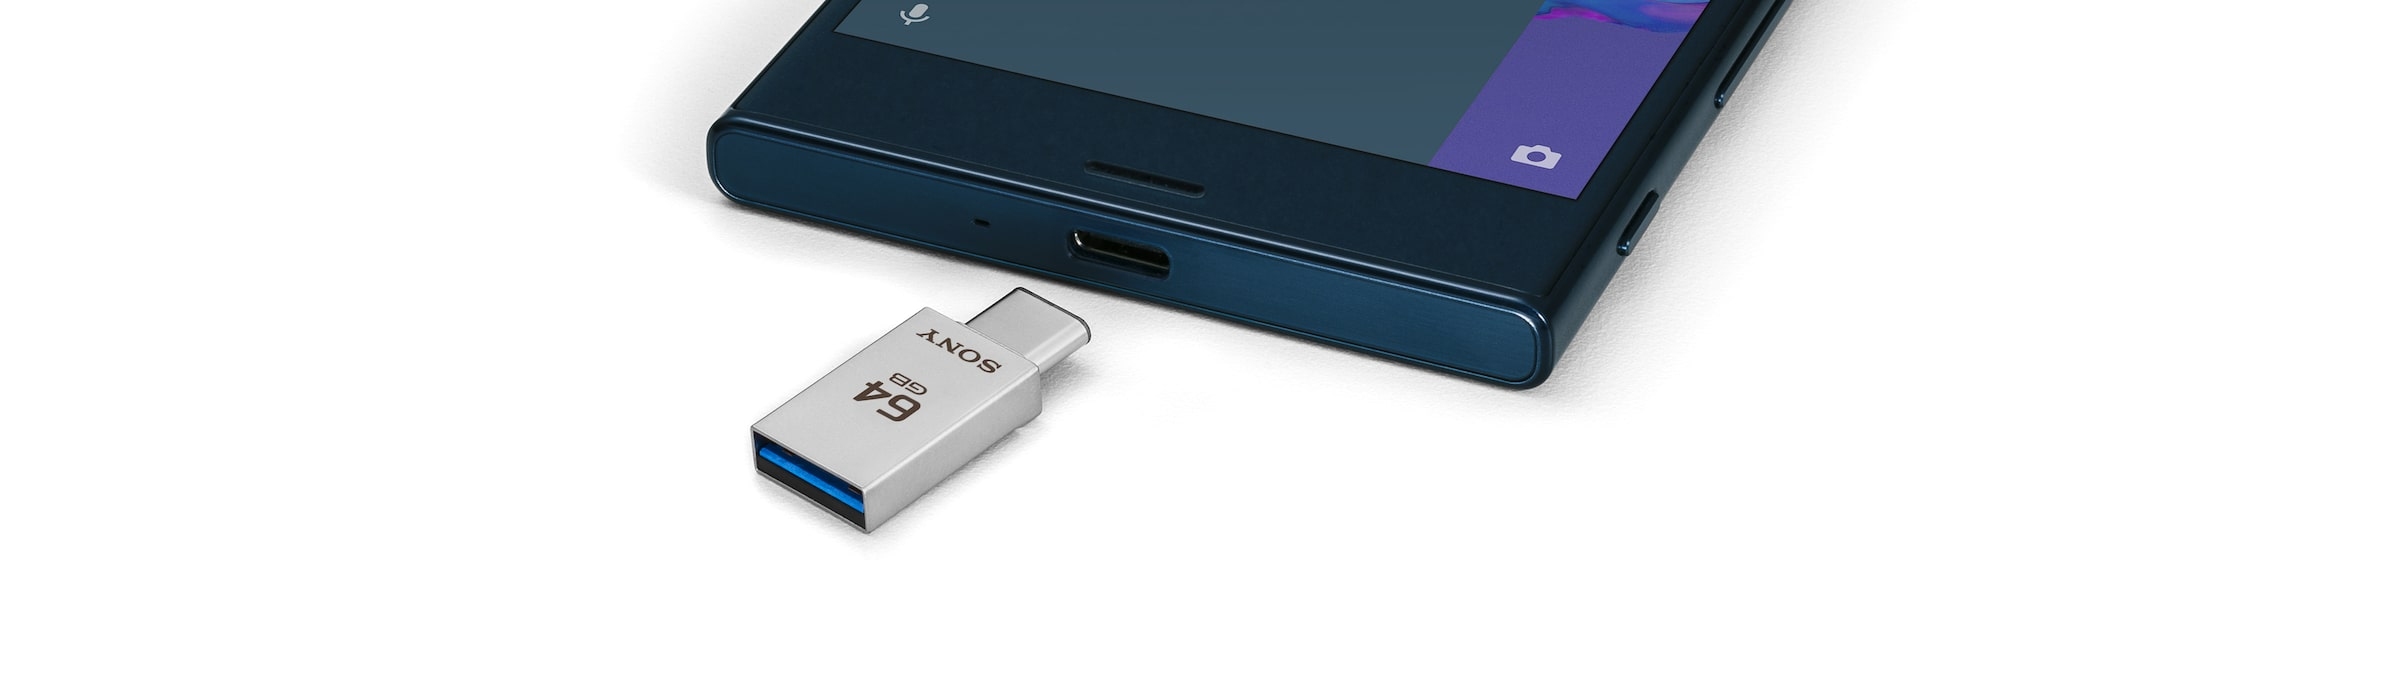 USB Type-C™ & Type-A Dual Connection Flash Drive in action